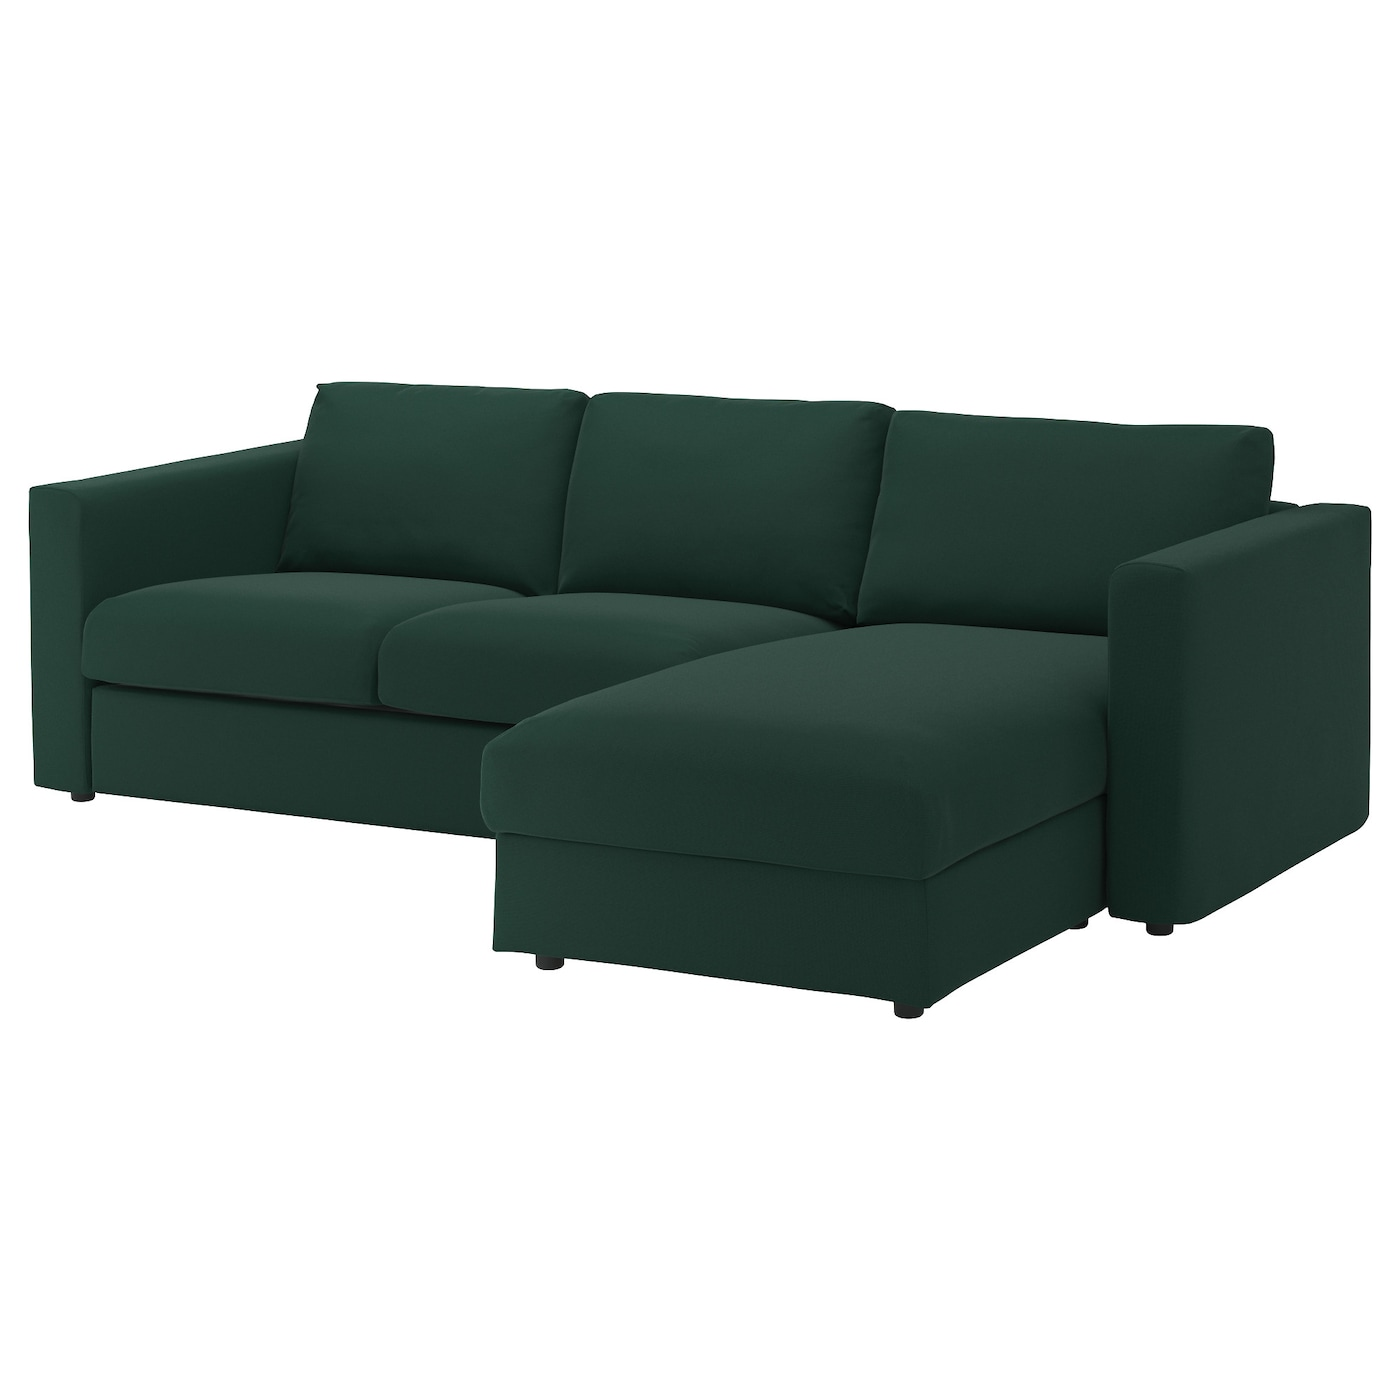 vimle 3 seat sofa with chaise longue gunnared dark green ikea. Black Bedroom Furniture Sets. Home Design Ideas